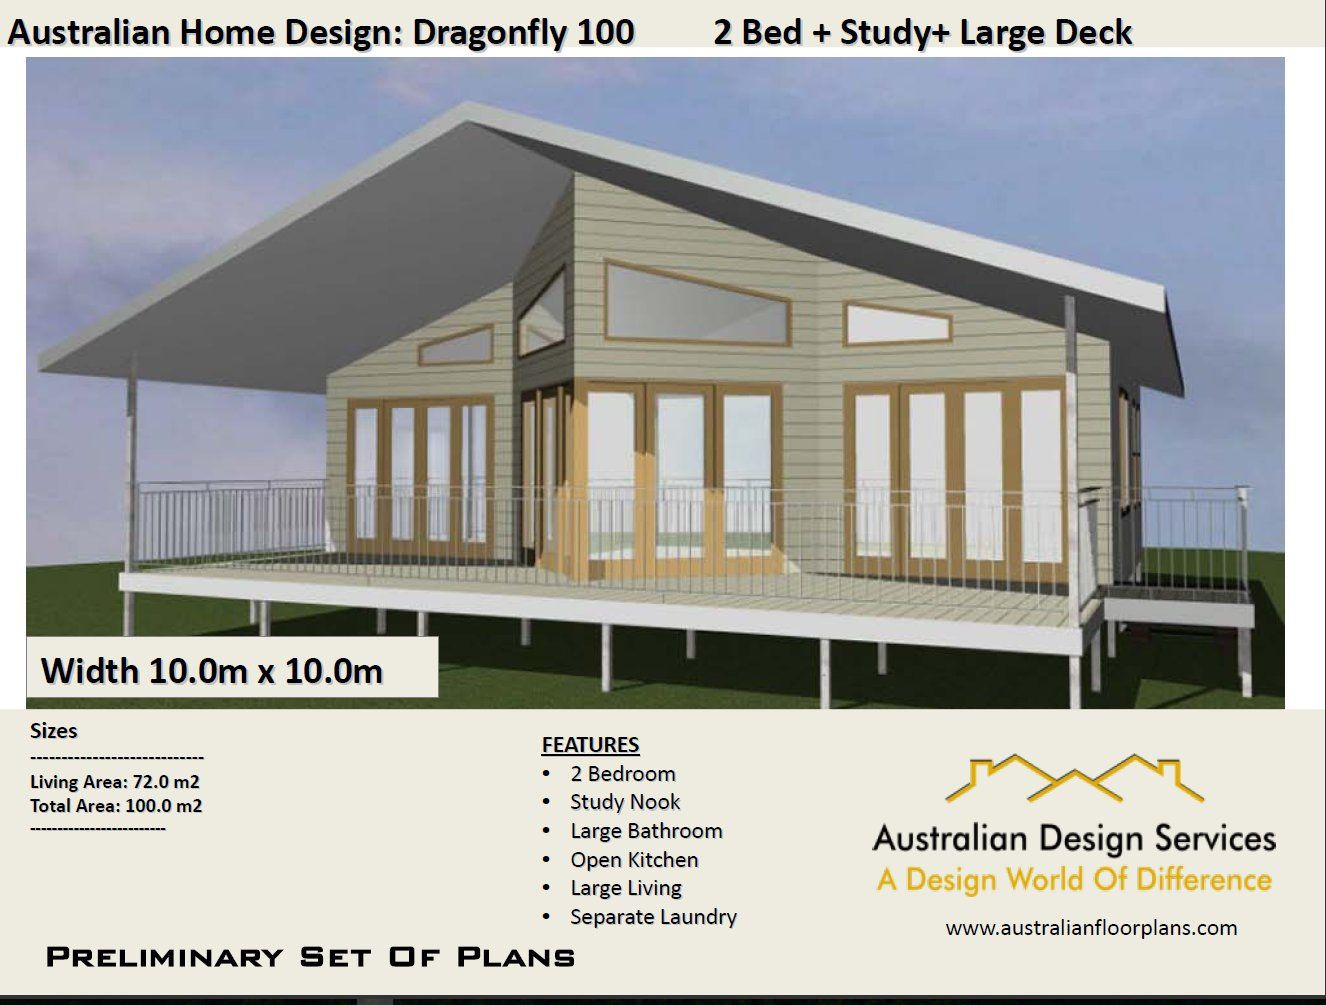 Superior 2 Bed + Study Nook Home Design   House Plan SALE   Living Area 72 M2